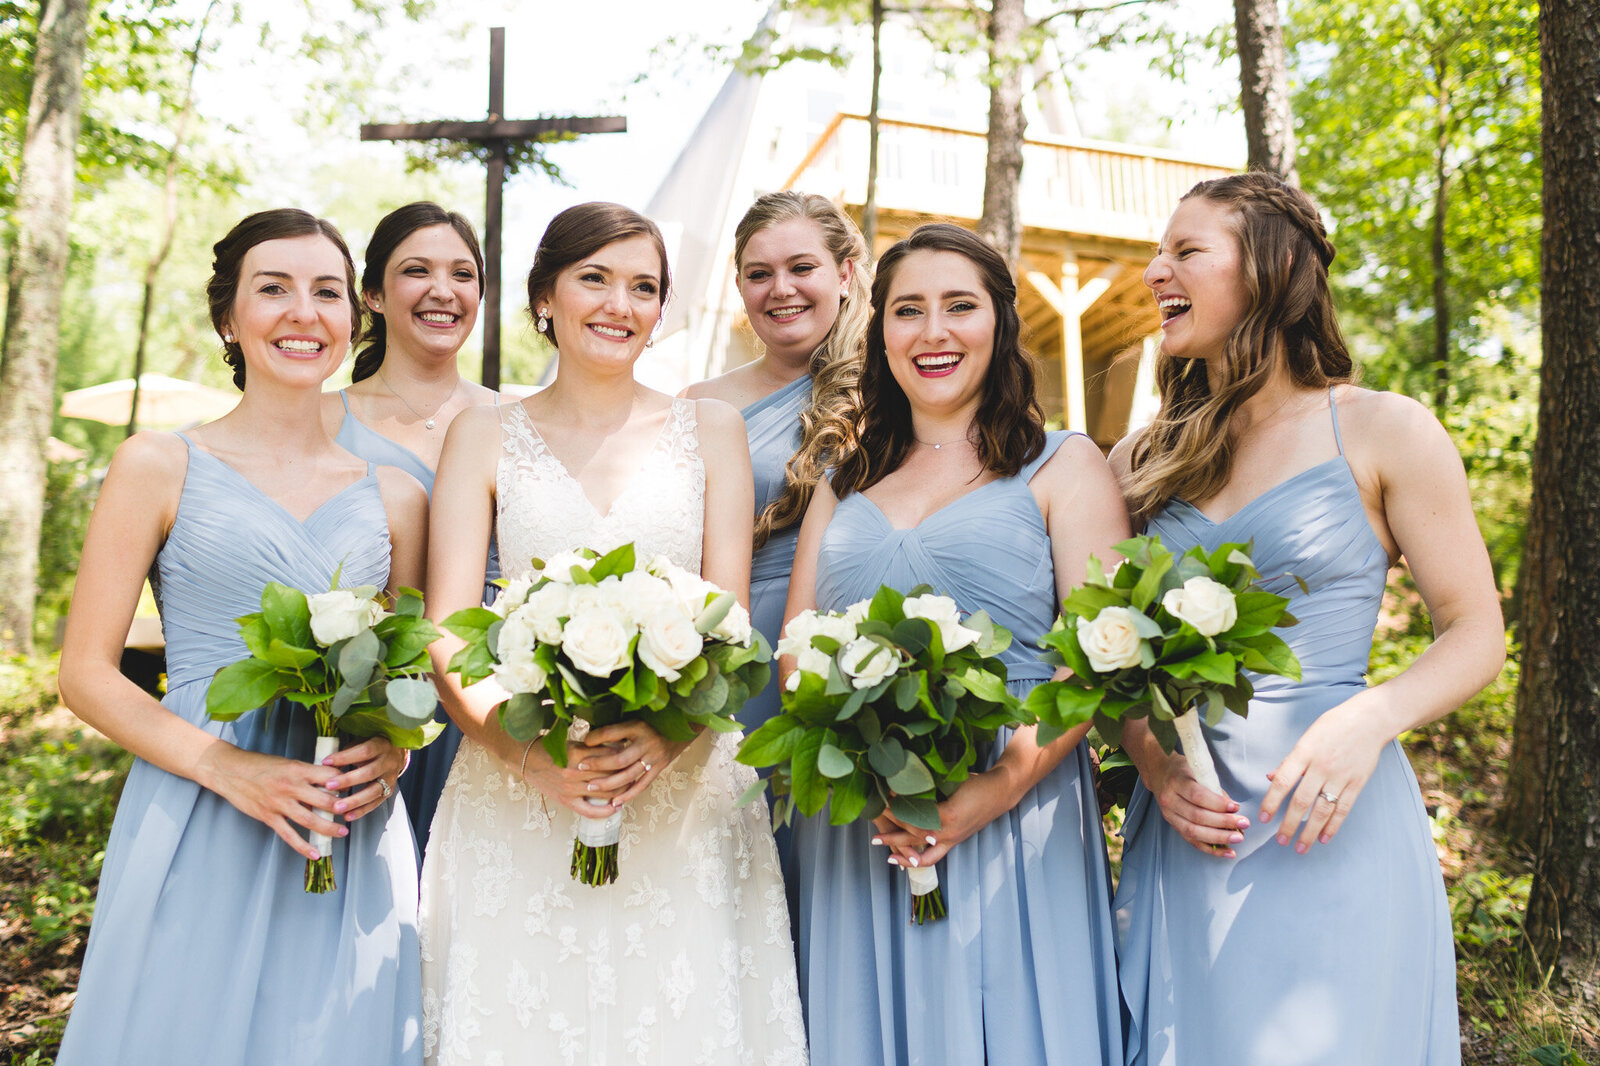 micro weding bridal party laughing with blue dresses and flowers ohio